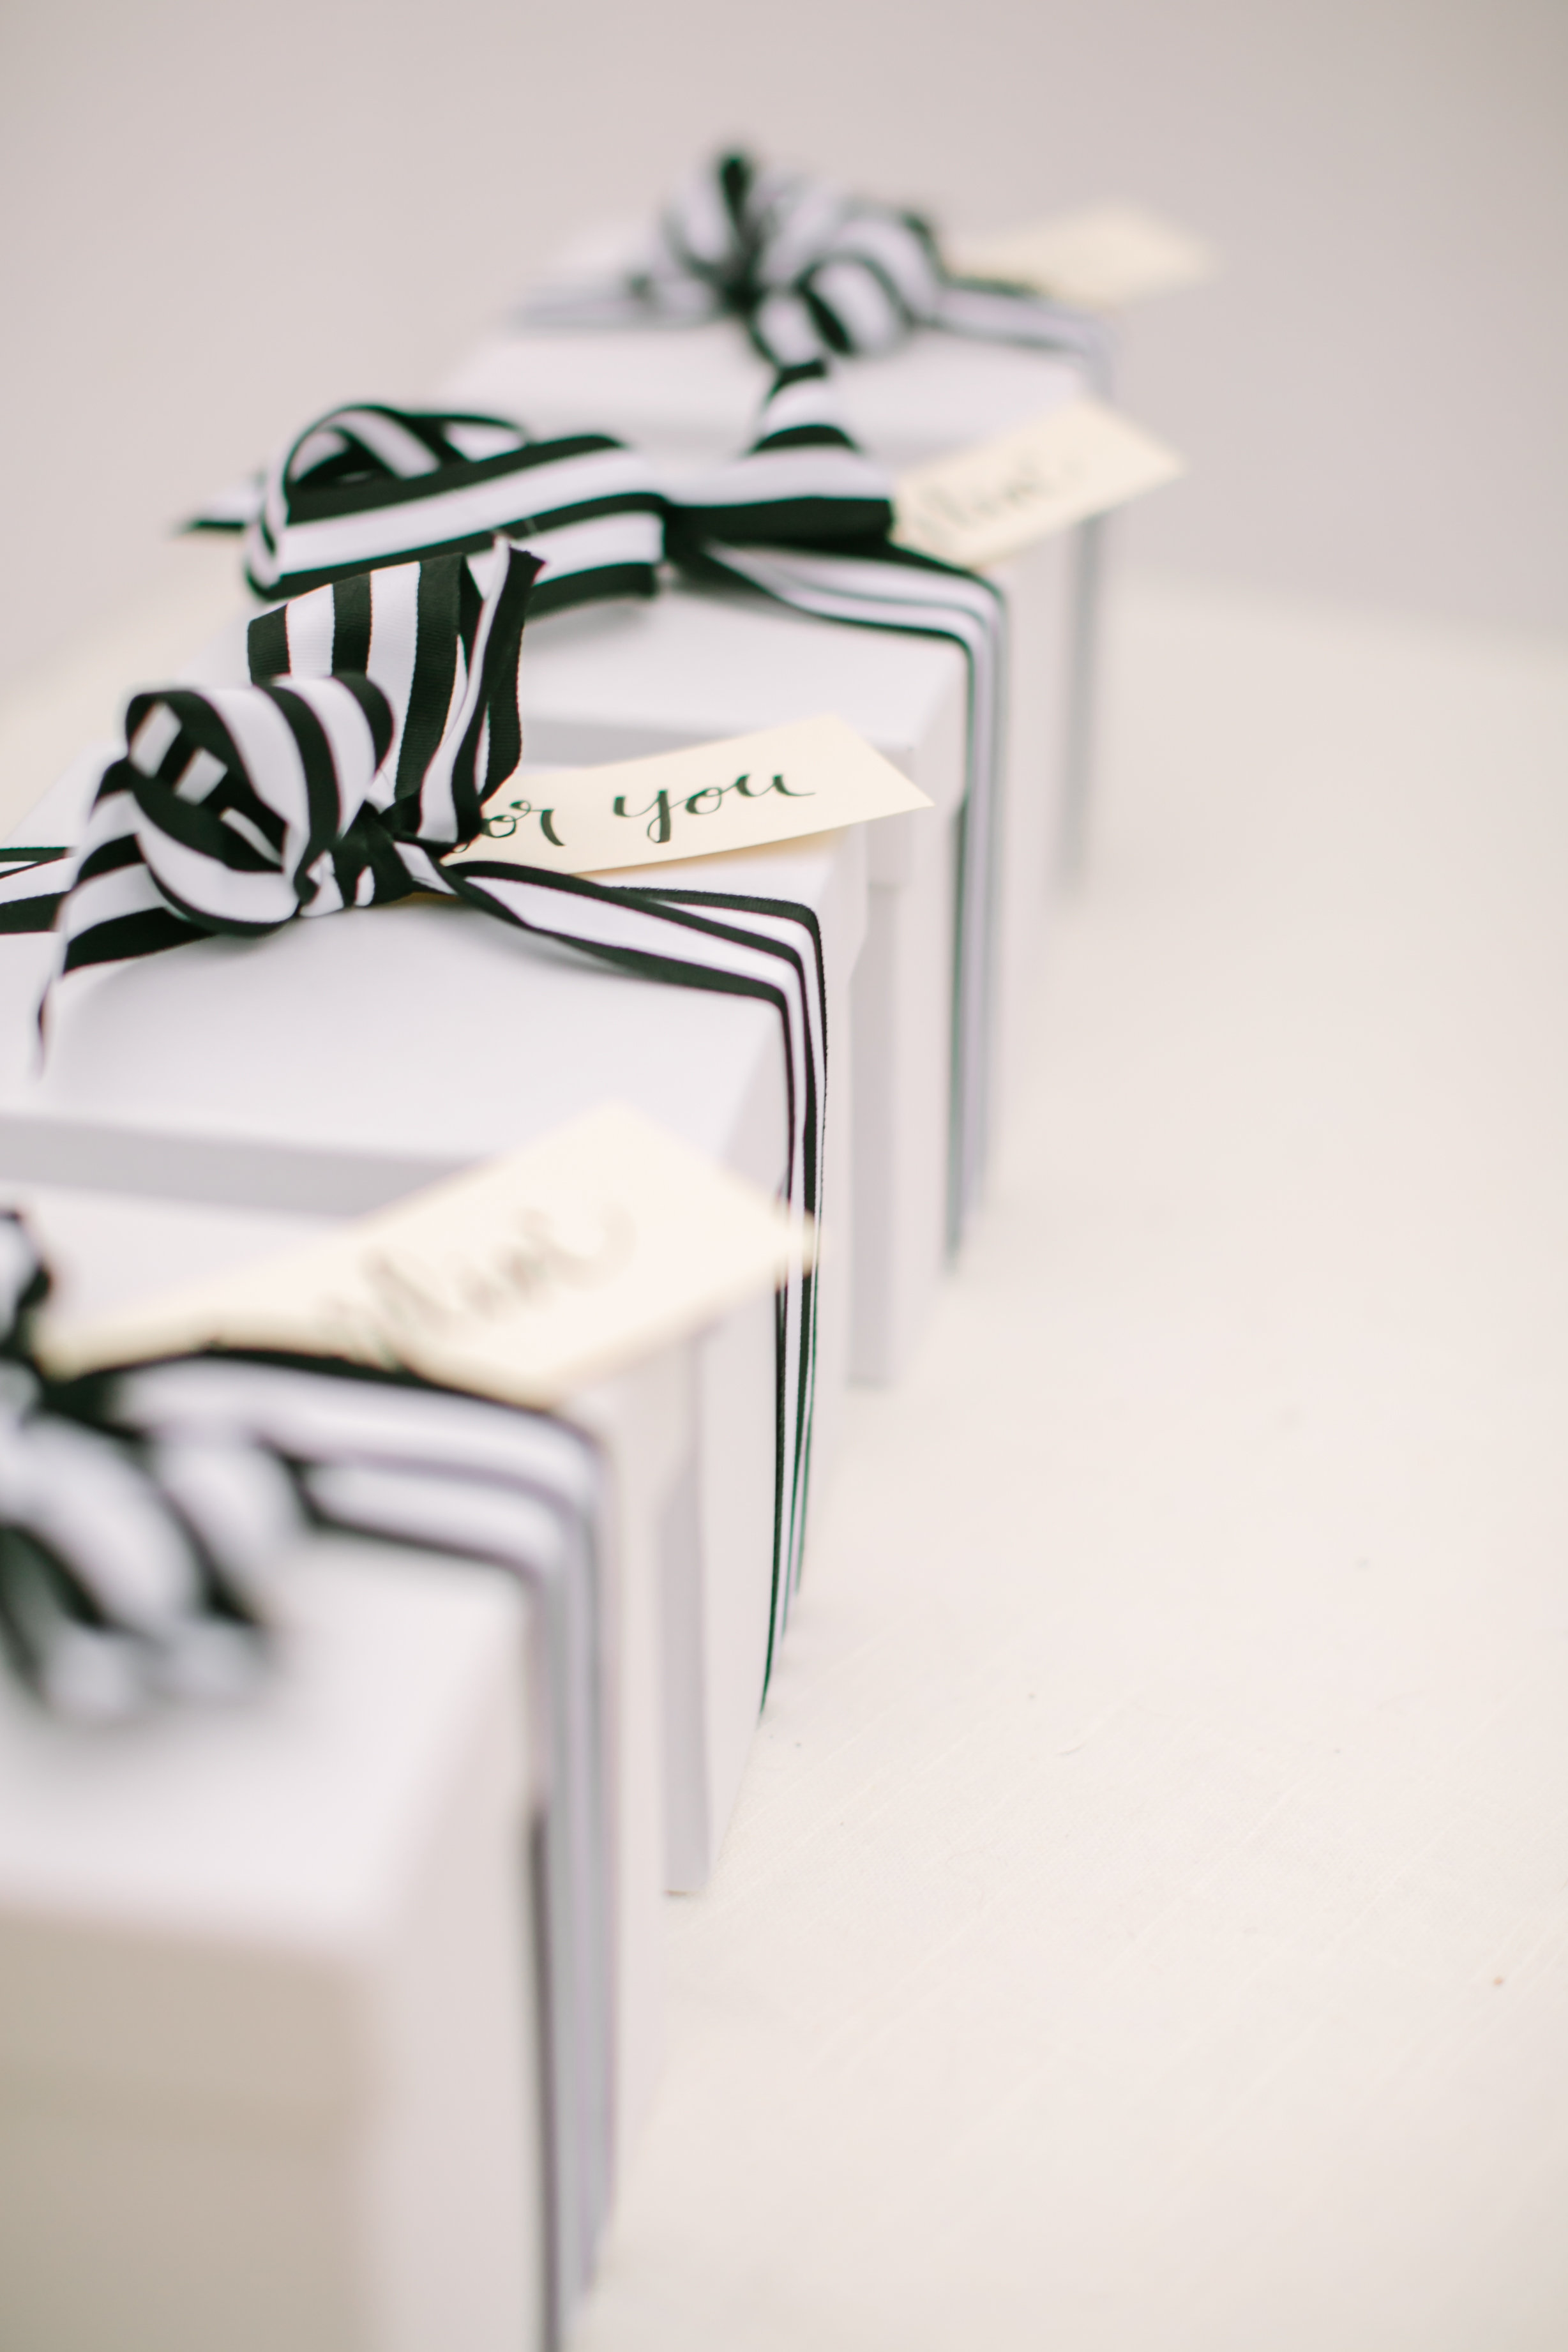 Gifts for Weddings and Events by Thats Darlin